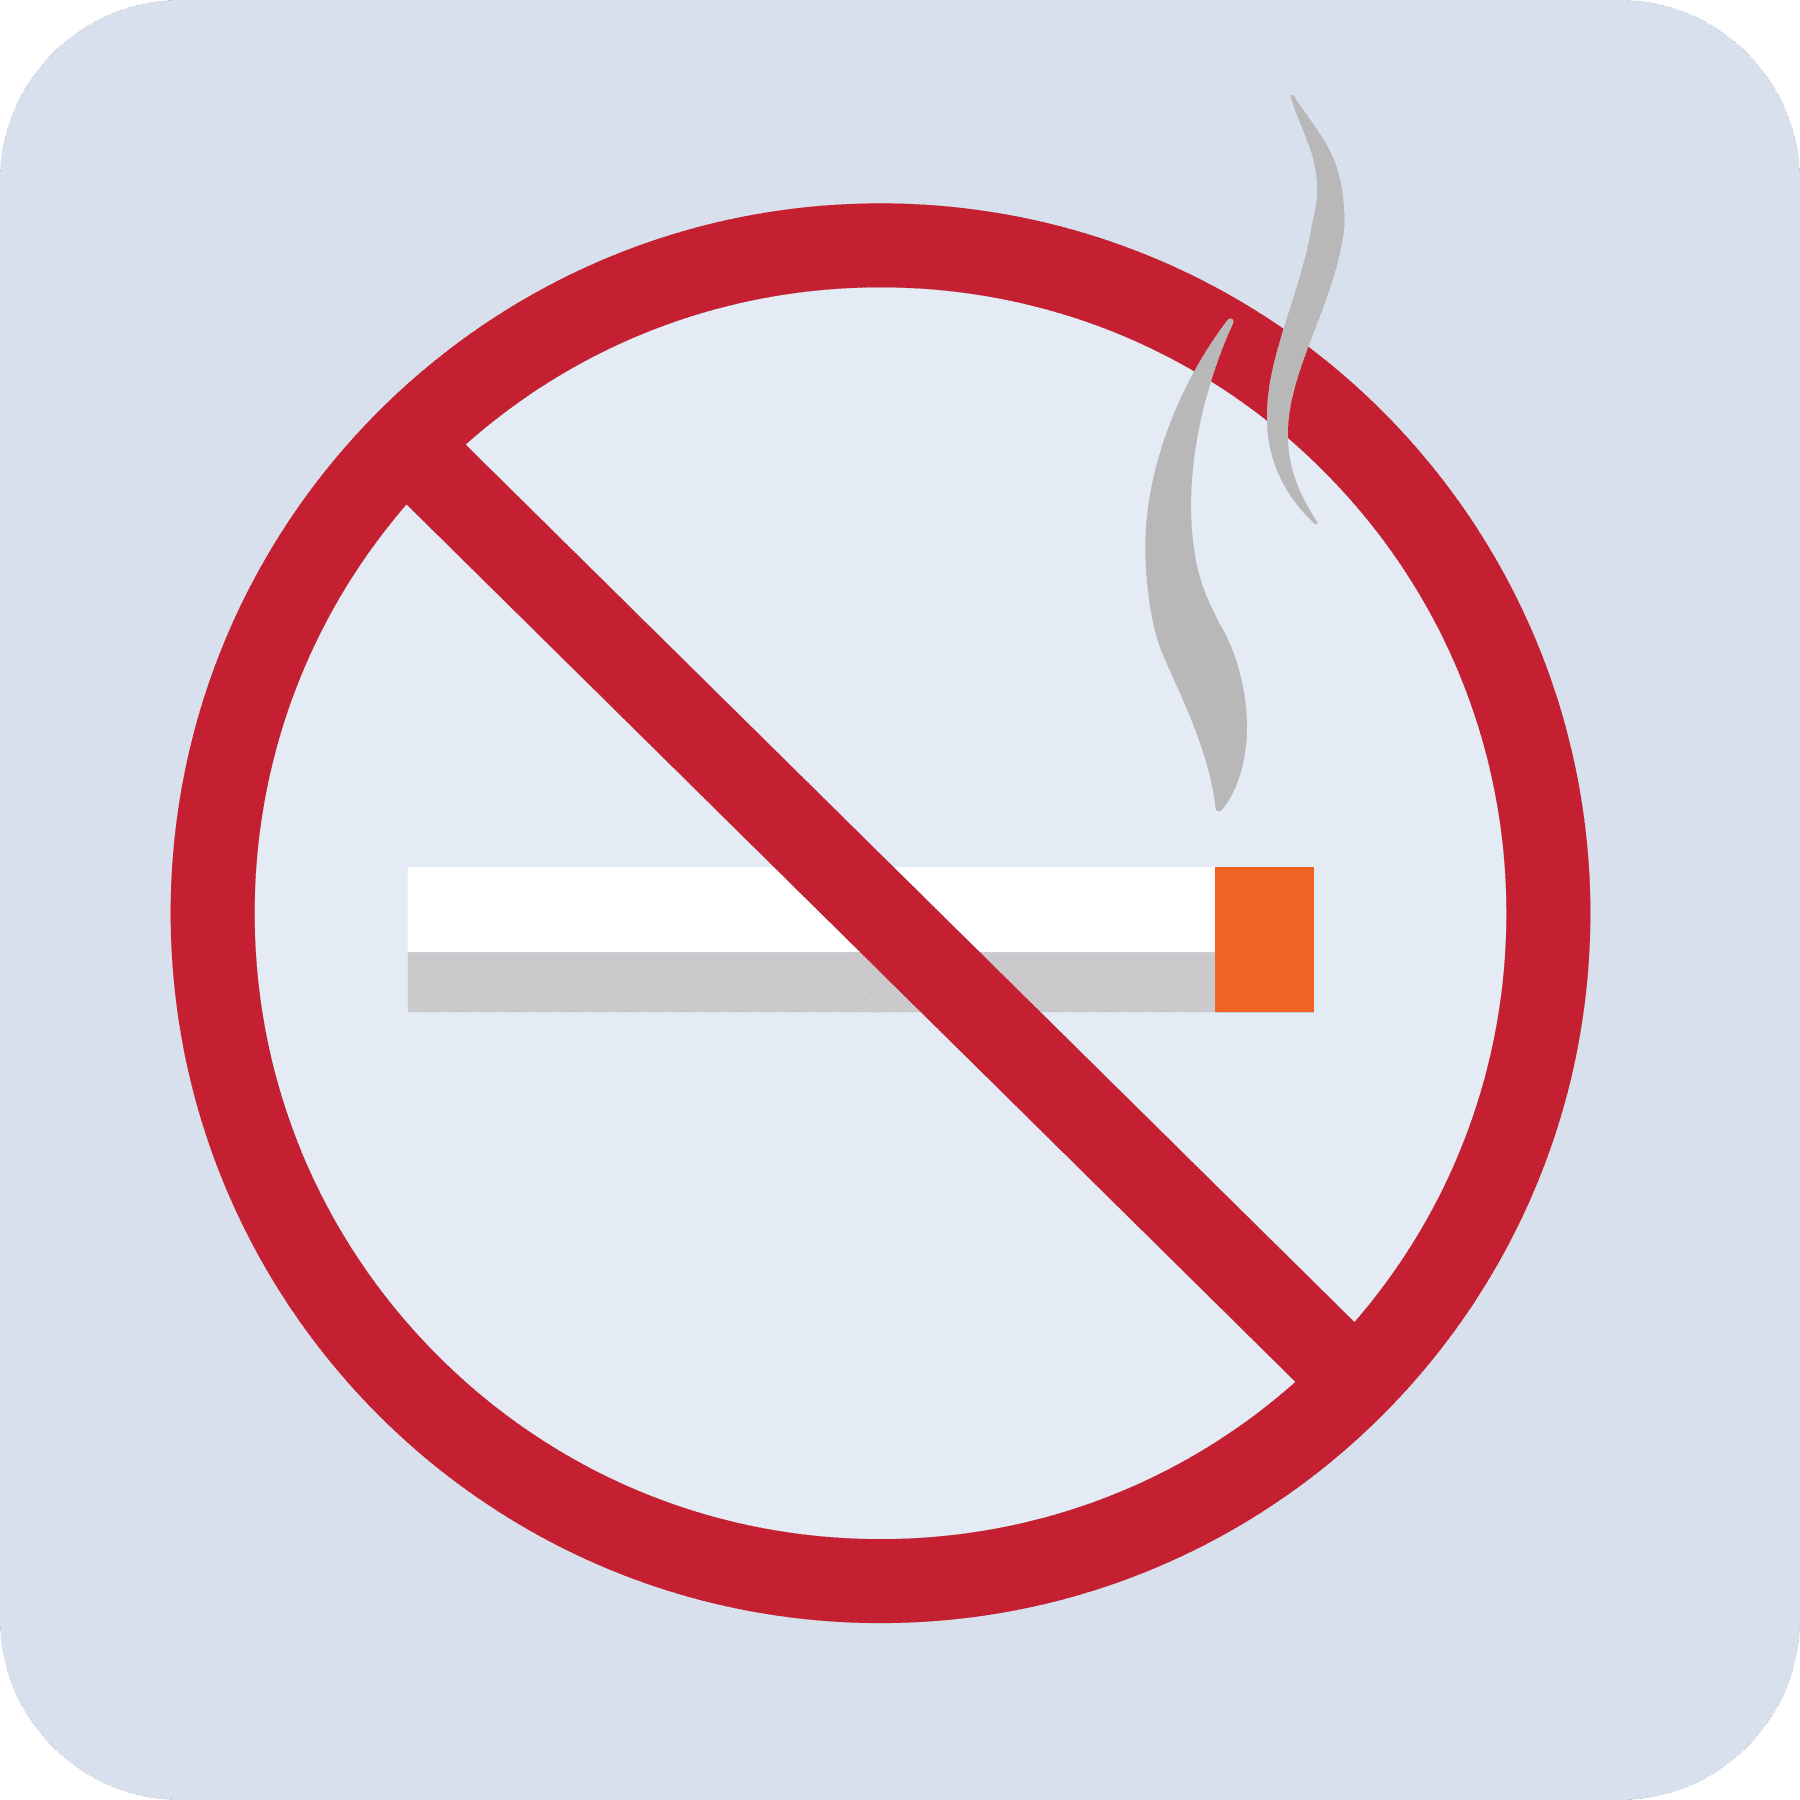 A lit cigarette with a no symbol over top of it.